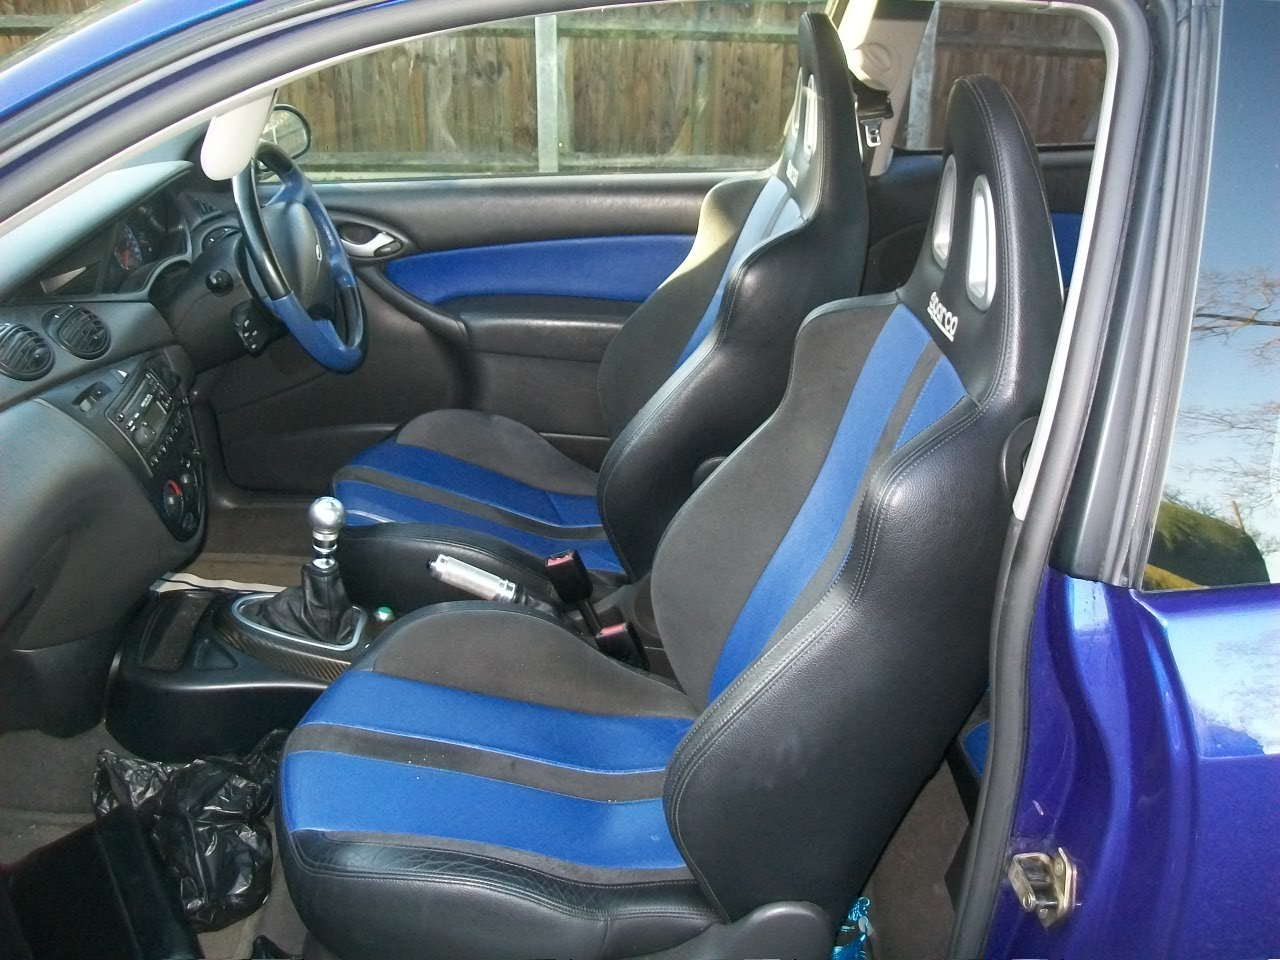 2003 Ford focus rs mk1 SOLD (picture 4 of 4)